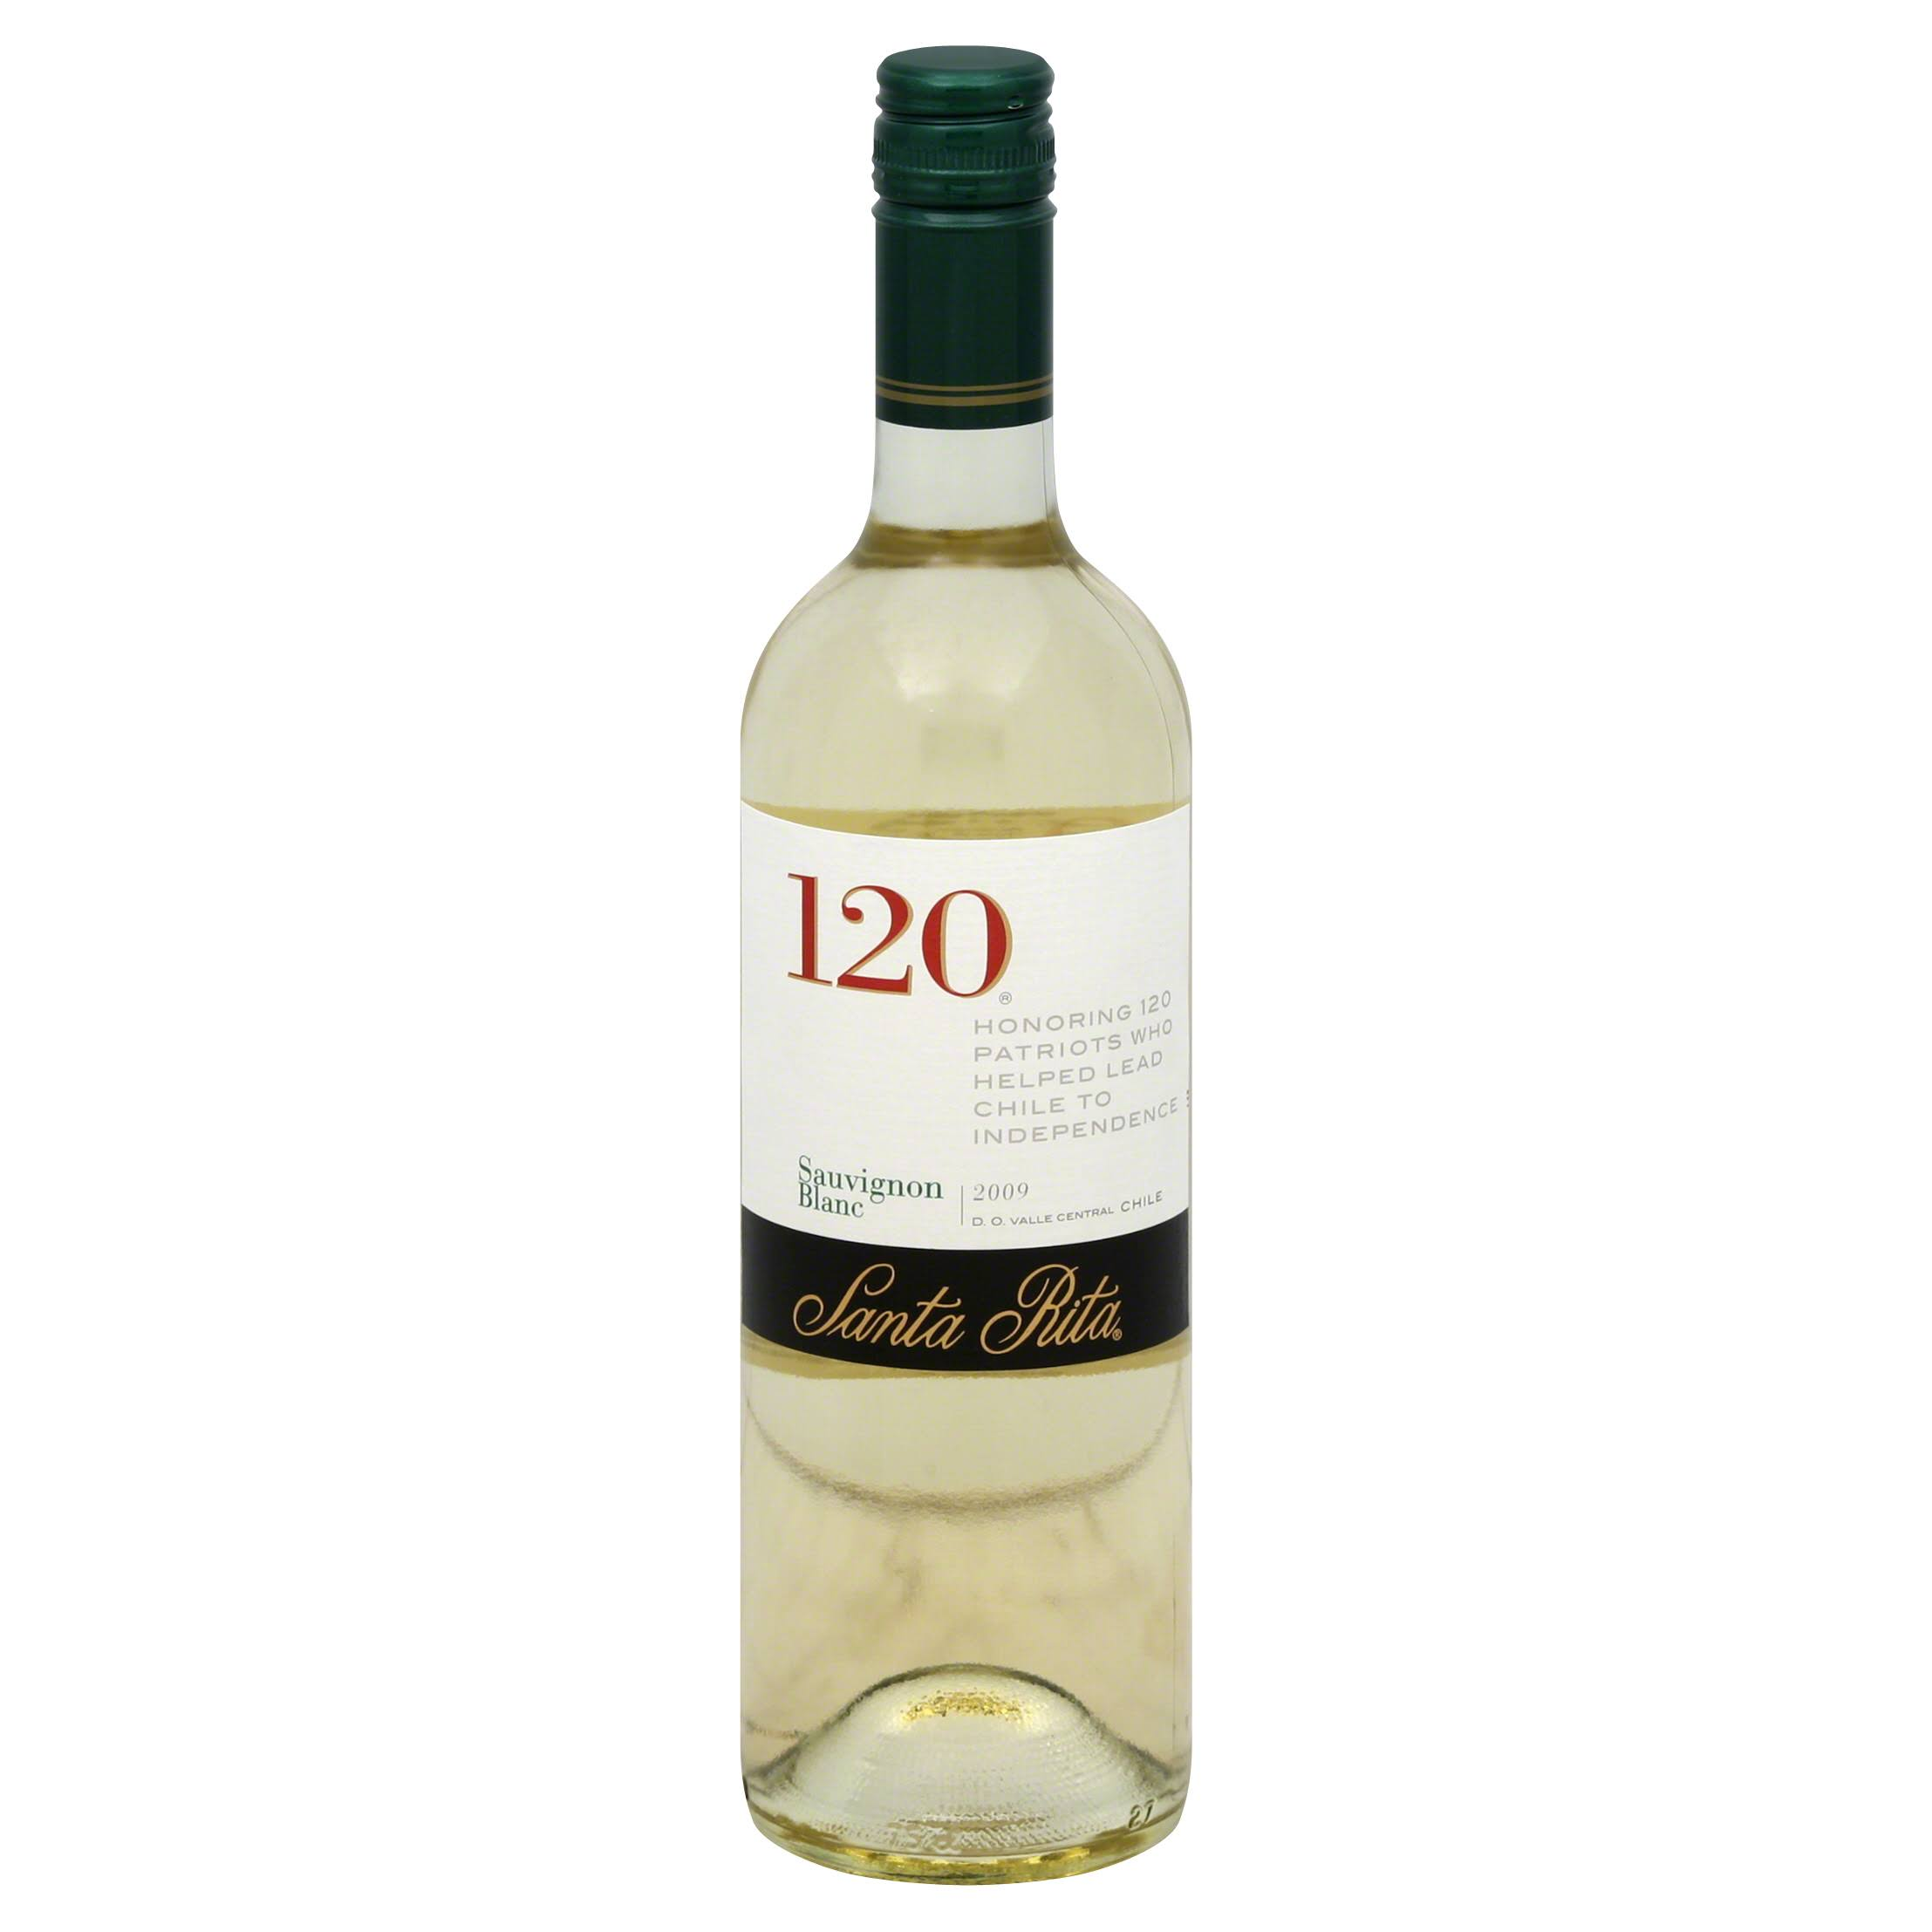 Santa Rita Sauvignon Blanc, 120, Valle Central Chile, 2009 - 750 ml